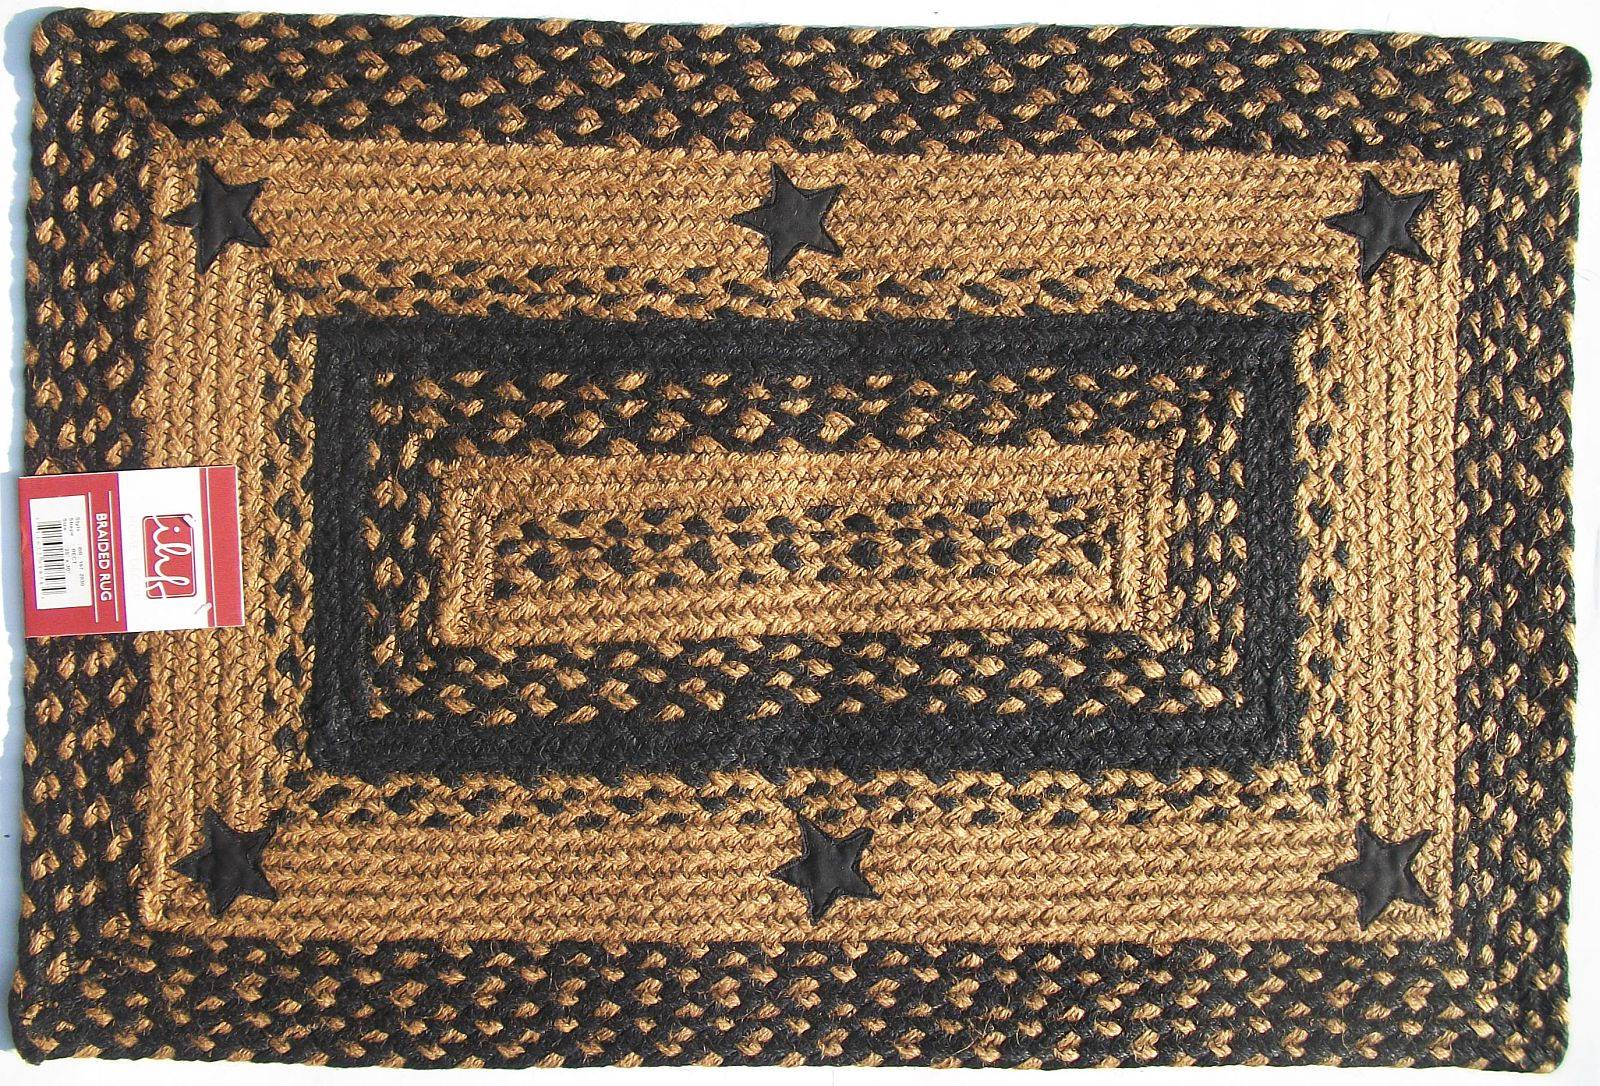 Ihf applique star black tan braided jute rug rustic primitive country home decor ebay Home decoration with jute